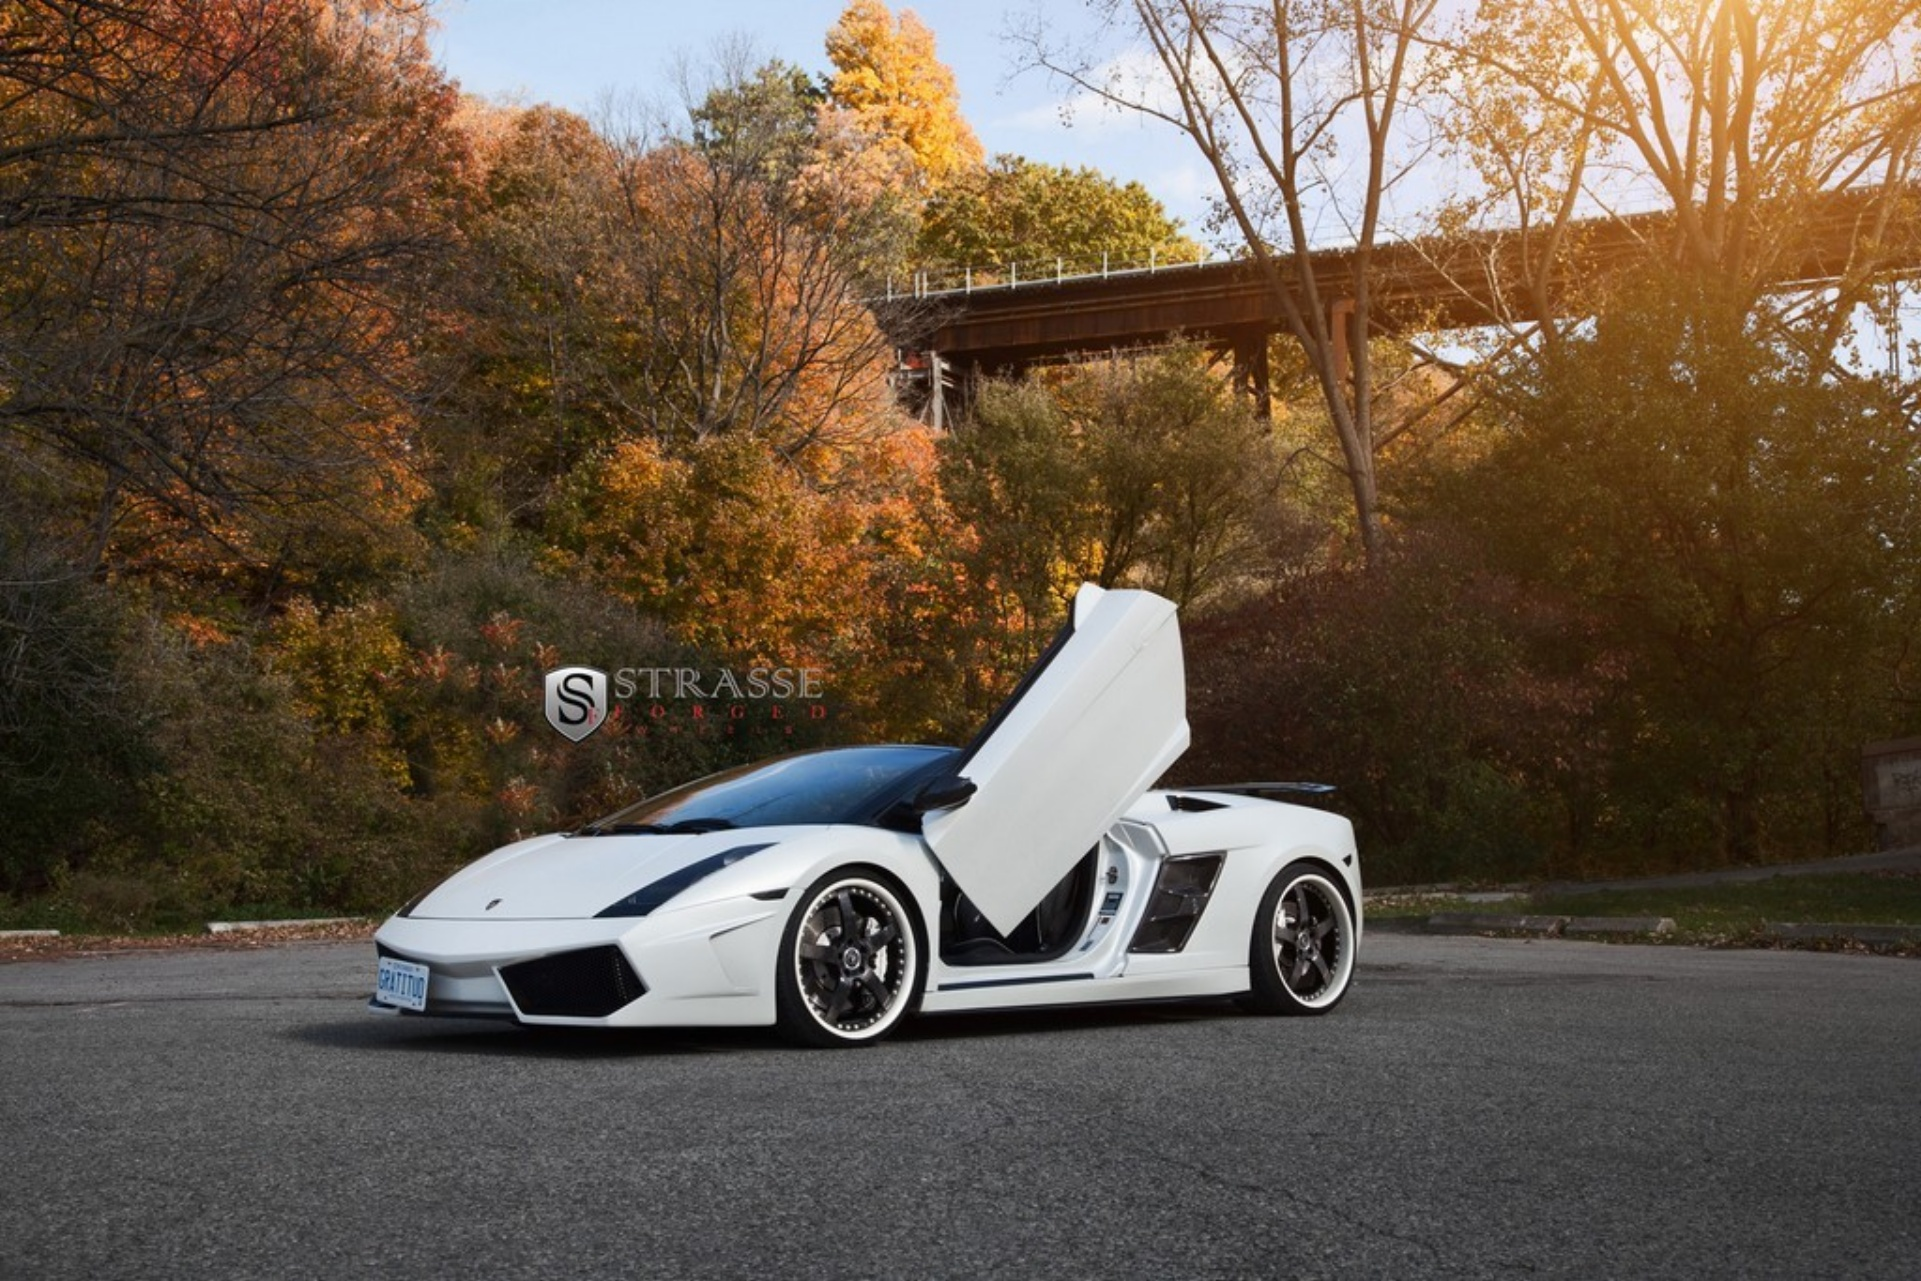 lamborghini gallardo spyder on strasse forged wheels. Black Bedroom Furniture Sets. Home Design Ideas